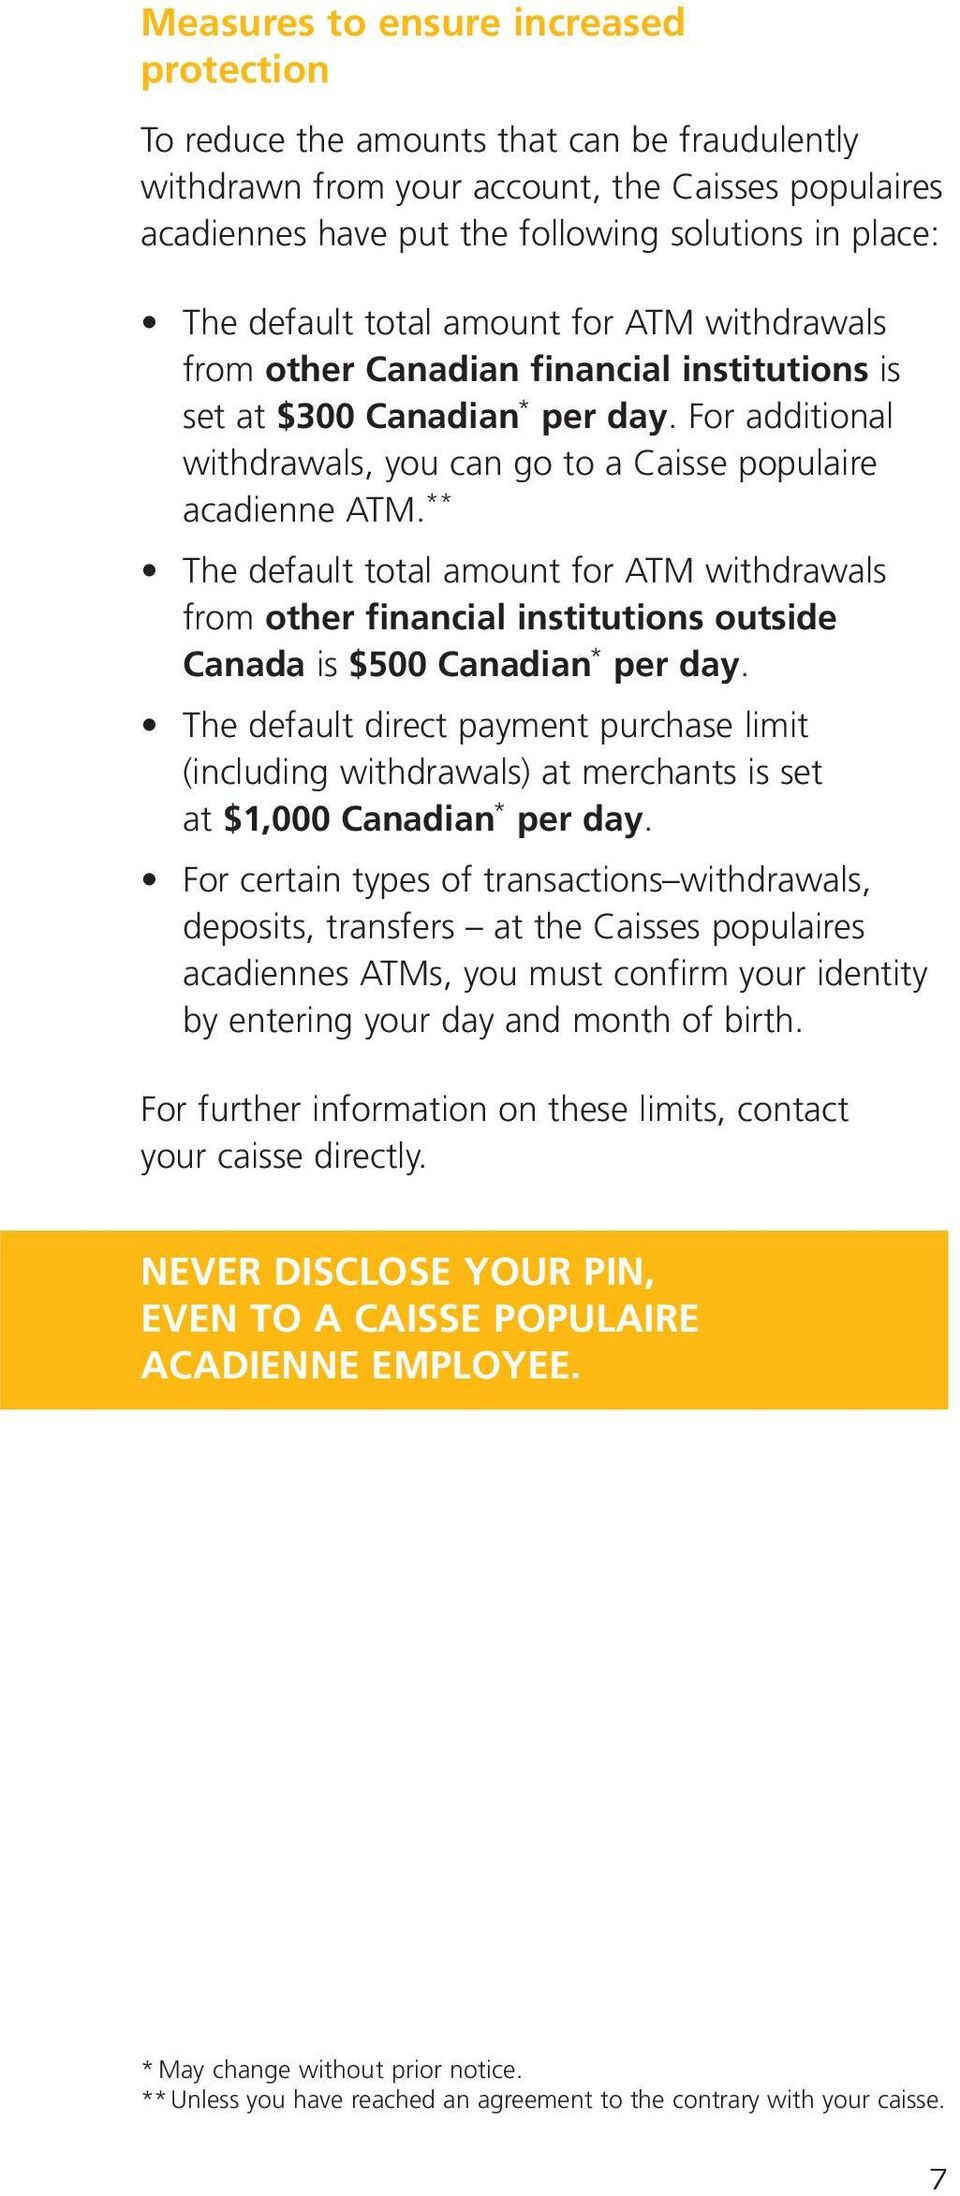 ** The default total amount for ATM withdrawals from other financial institutions outside Canada is $500 Canadian * per day.